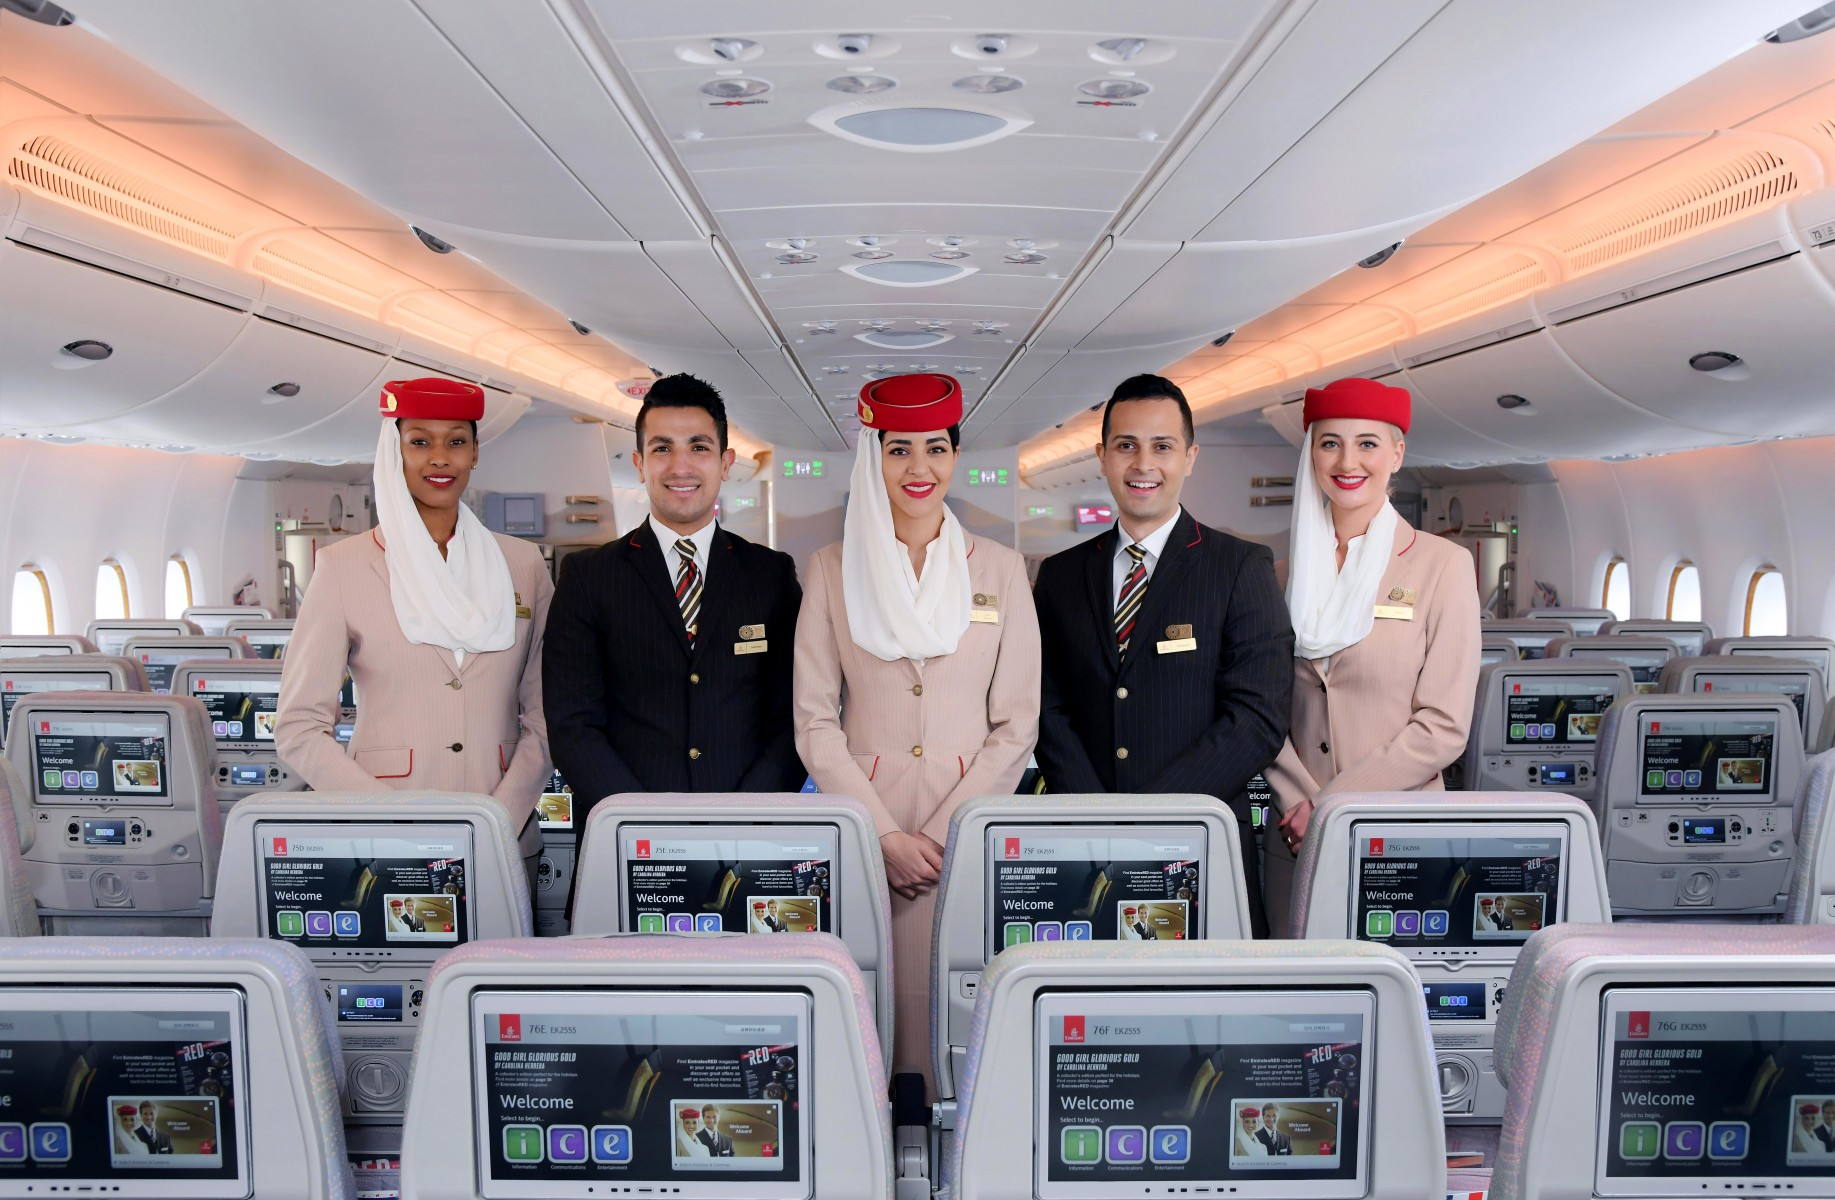 Emirates named World's Leading Cabin Crew 2019 and World's Leading Airline – Economy Class at the World Travel Awards Grand Final.